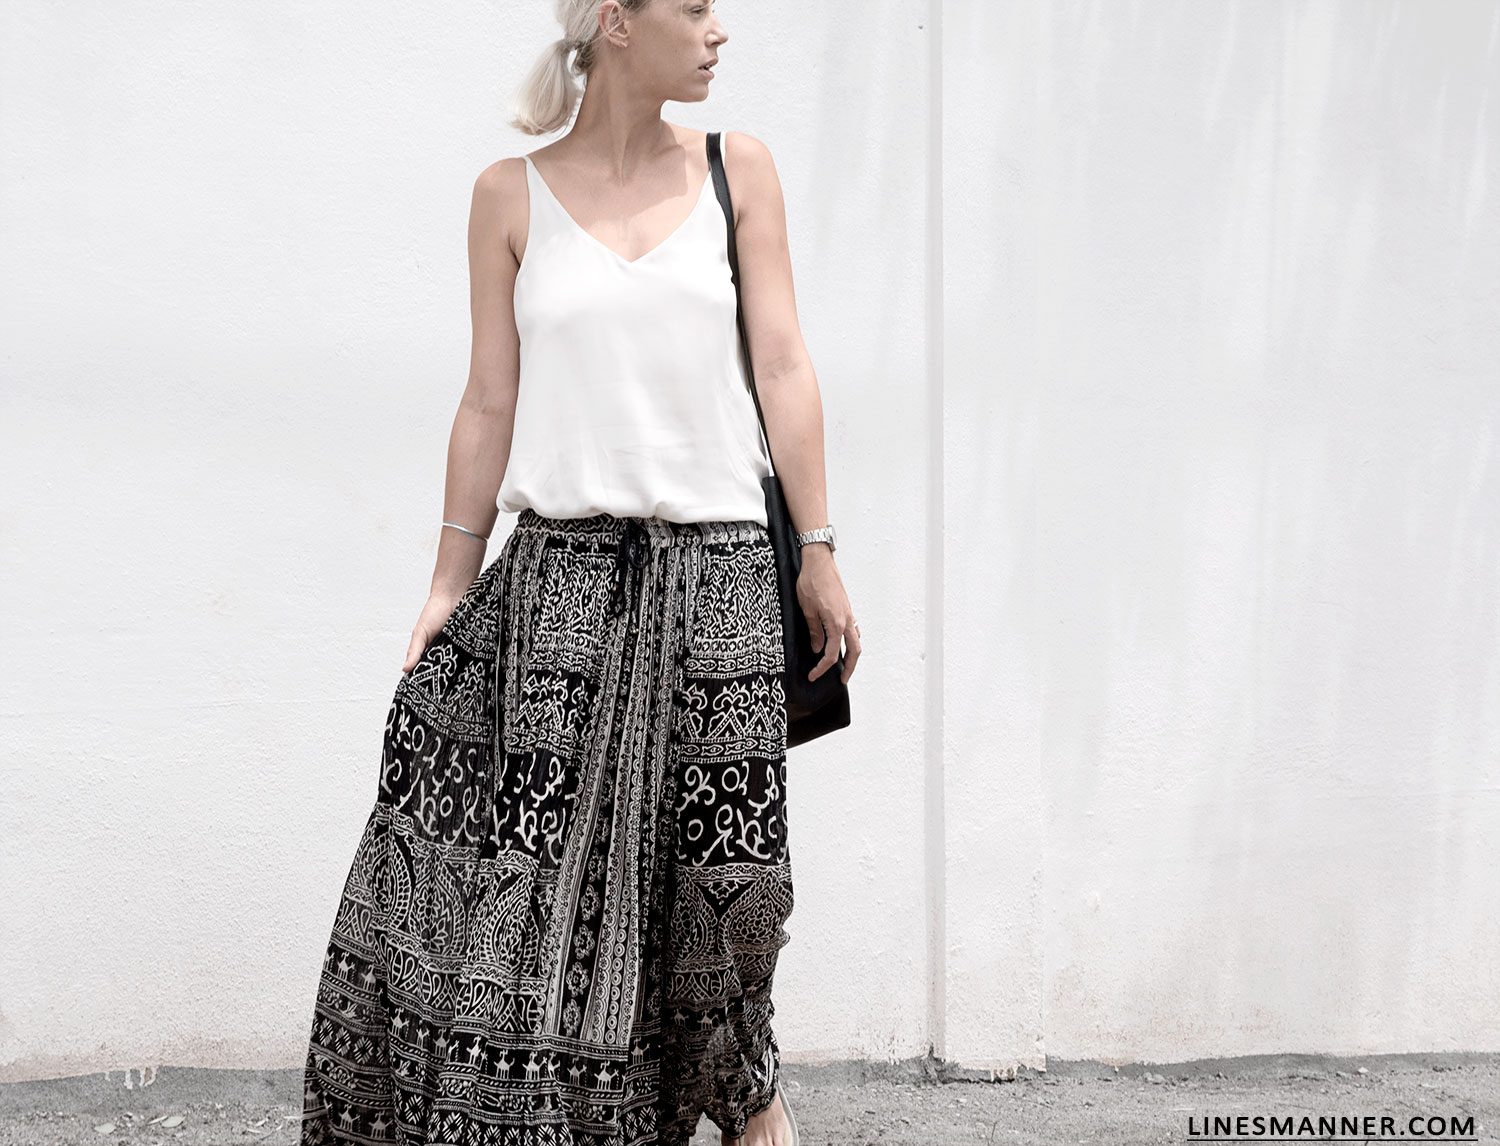 Lines-Manner-Tribal-Monochrome-Airy-Prints-Printed-Black_and_White-MVN-Details-Modern-12